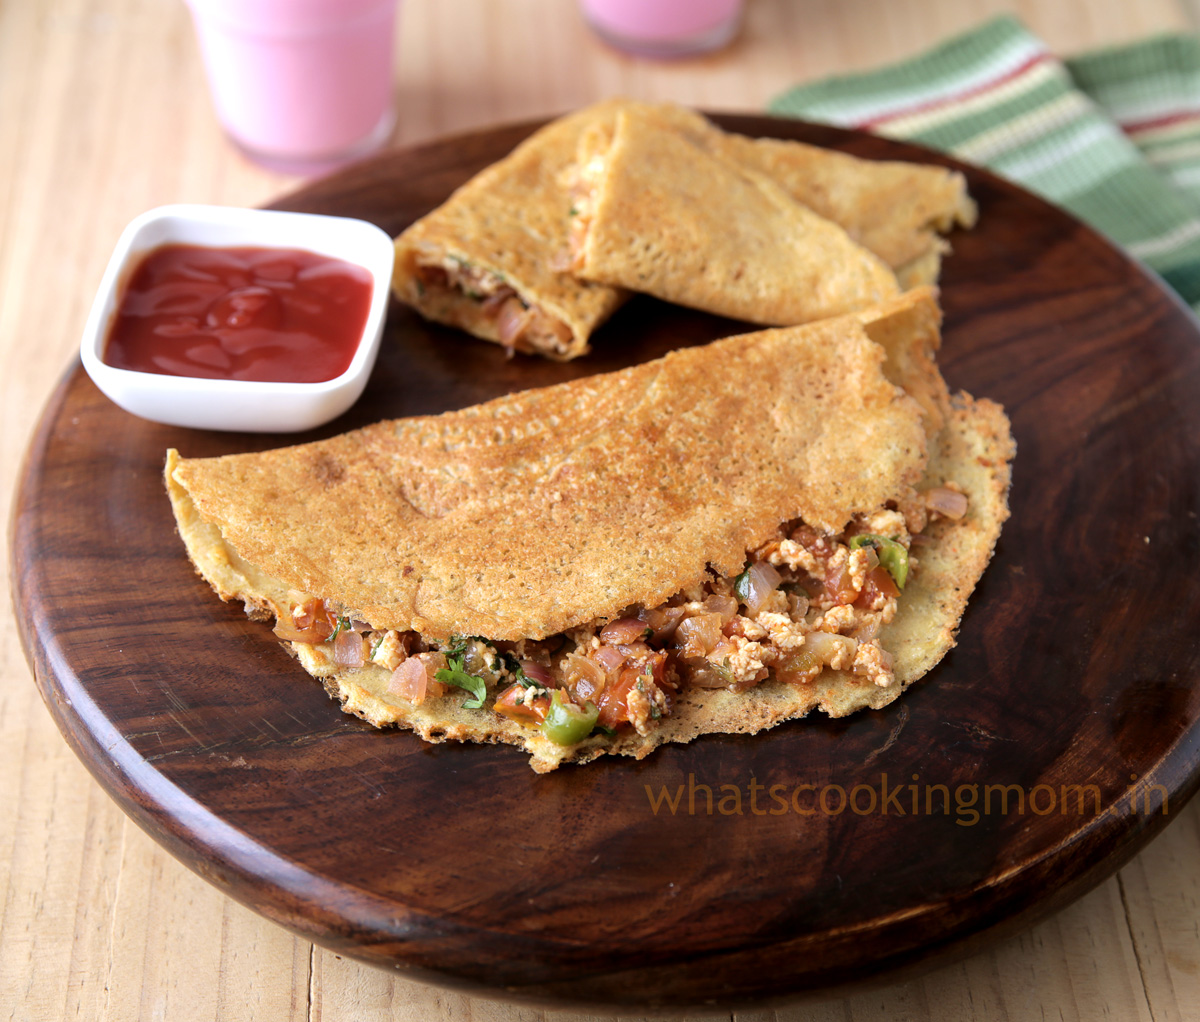 Moong Dal Cheela - lentil pancakes , healthy , vegetarian, snack, breakfast, kids tiffin box, Indian food